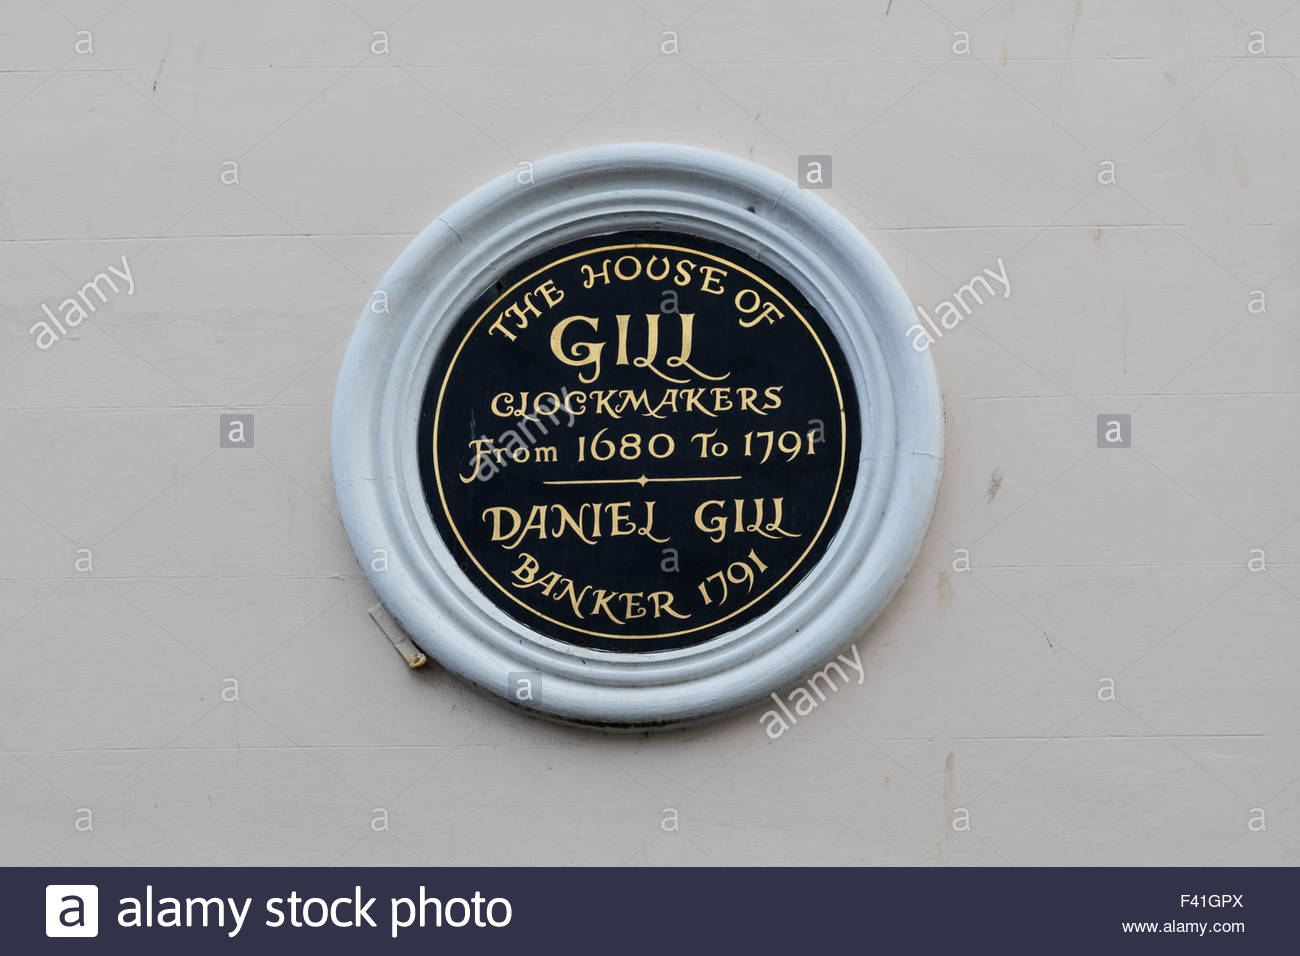 A plaque on a building in the High Street, Rye commemorating Gill clockmakers, established there between 1680 and - Stock Image